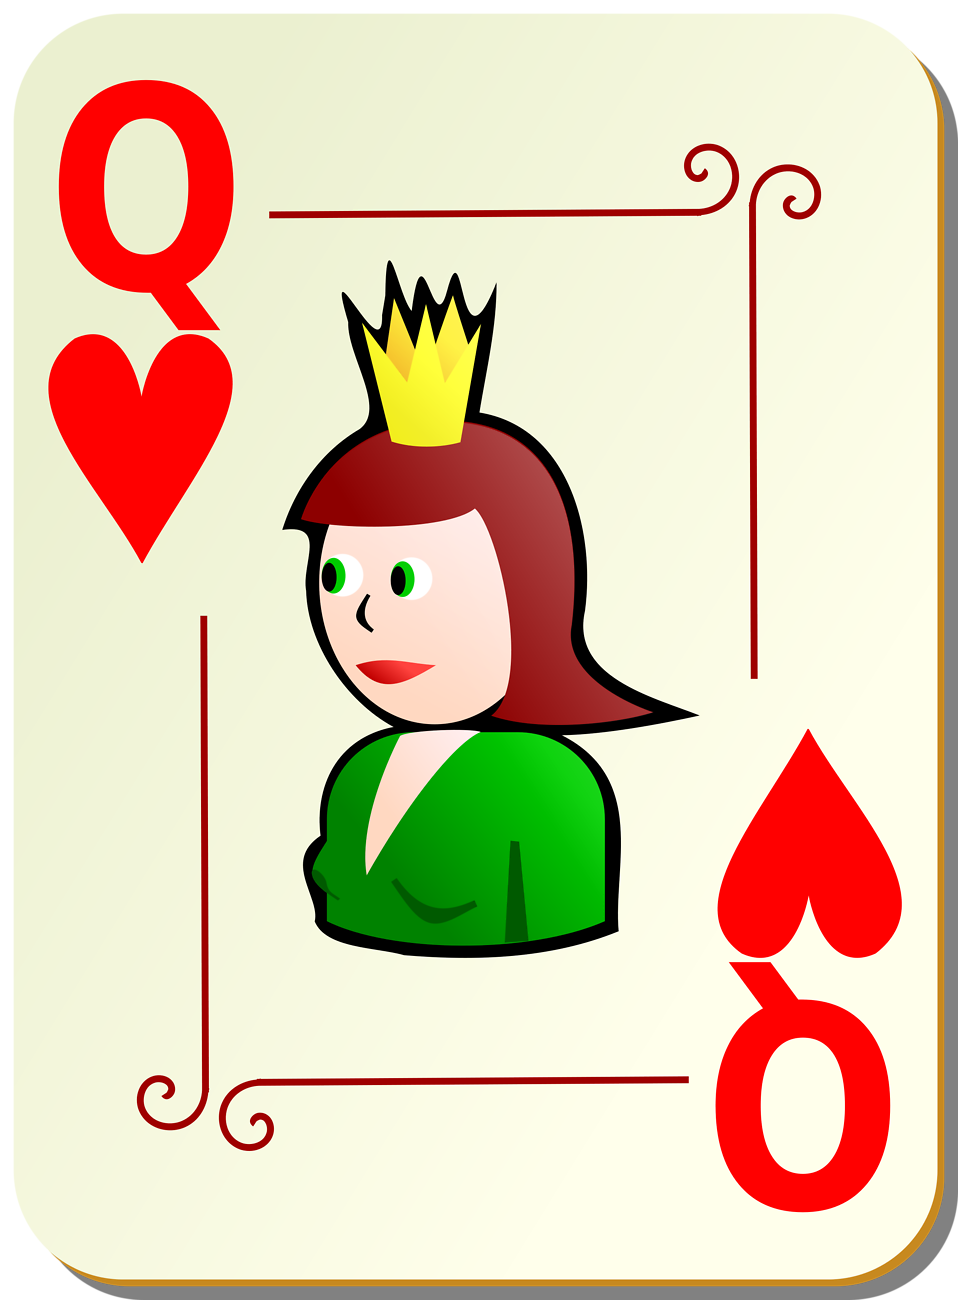 Queen of hearts playing card clipart freeuse stock Playing Cards | Free Stock Photo | Illustration of a Queen of ... freeuse stock